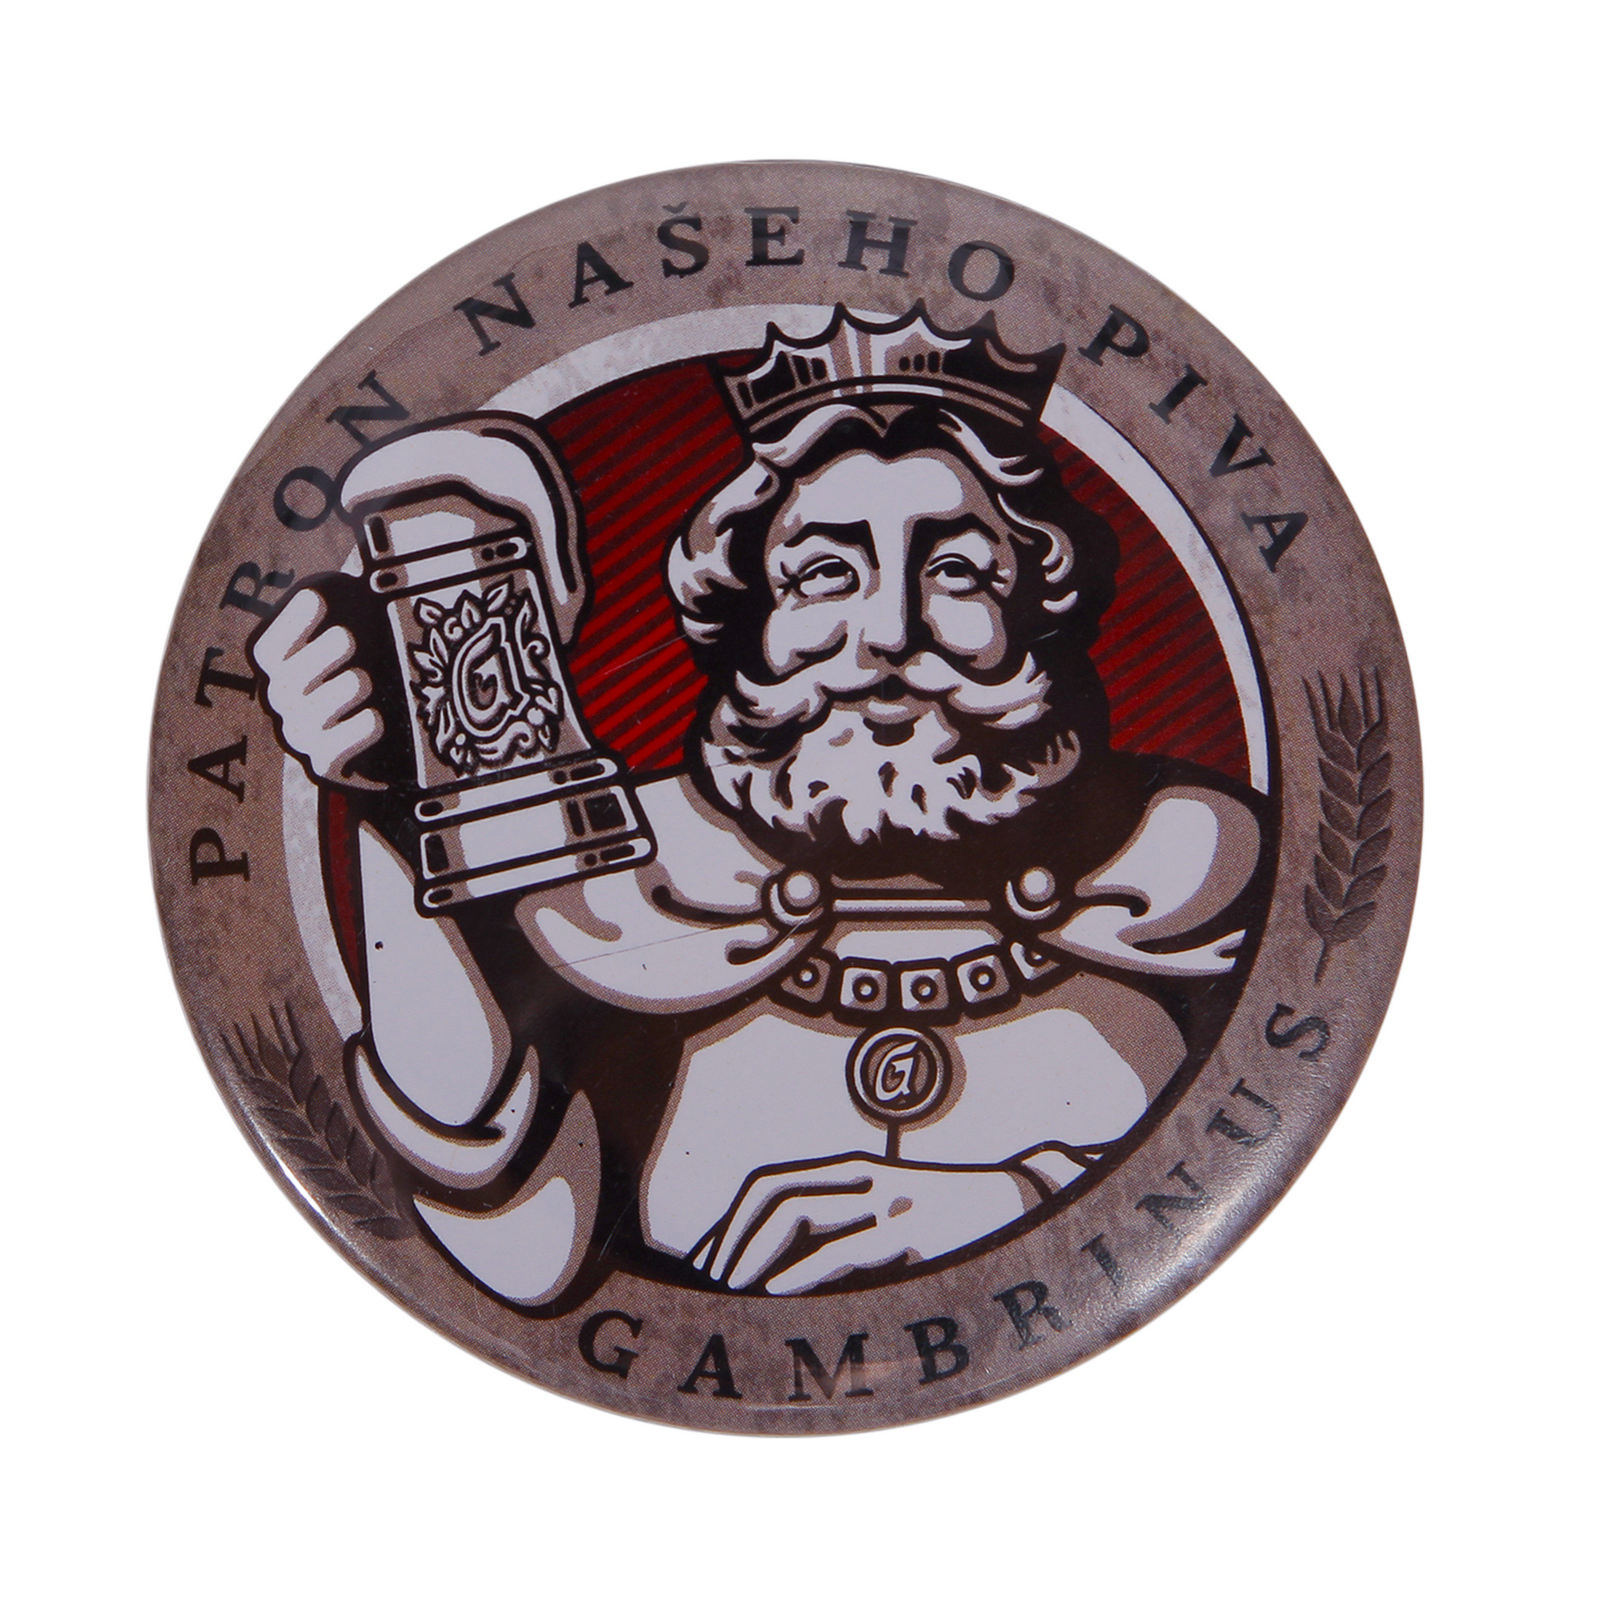 Gambrinus Bottle Opener With Magnet